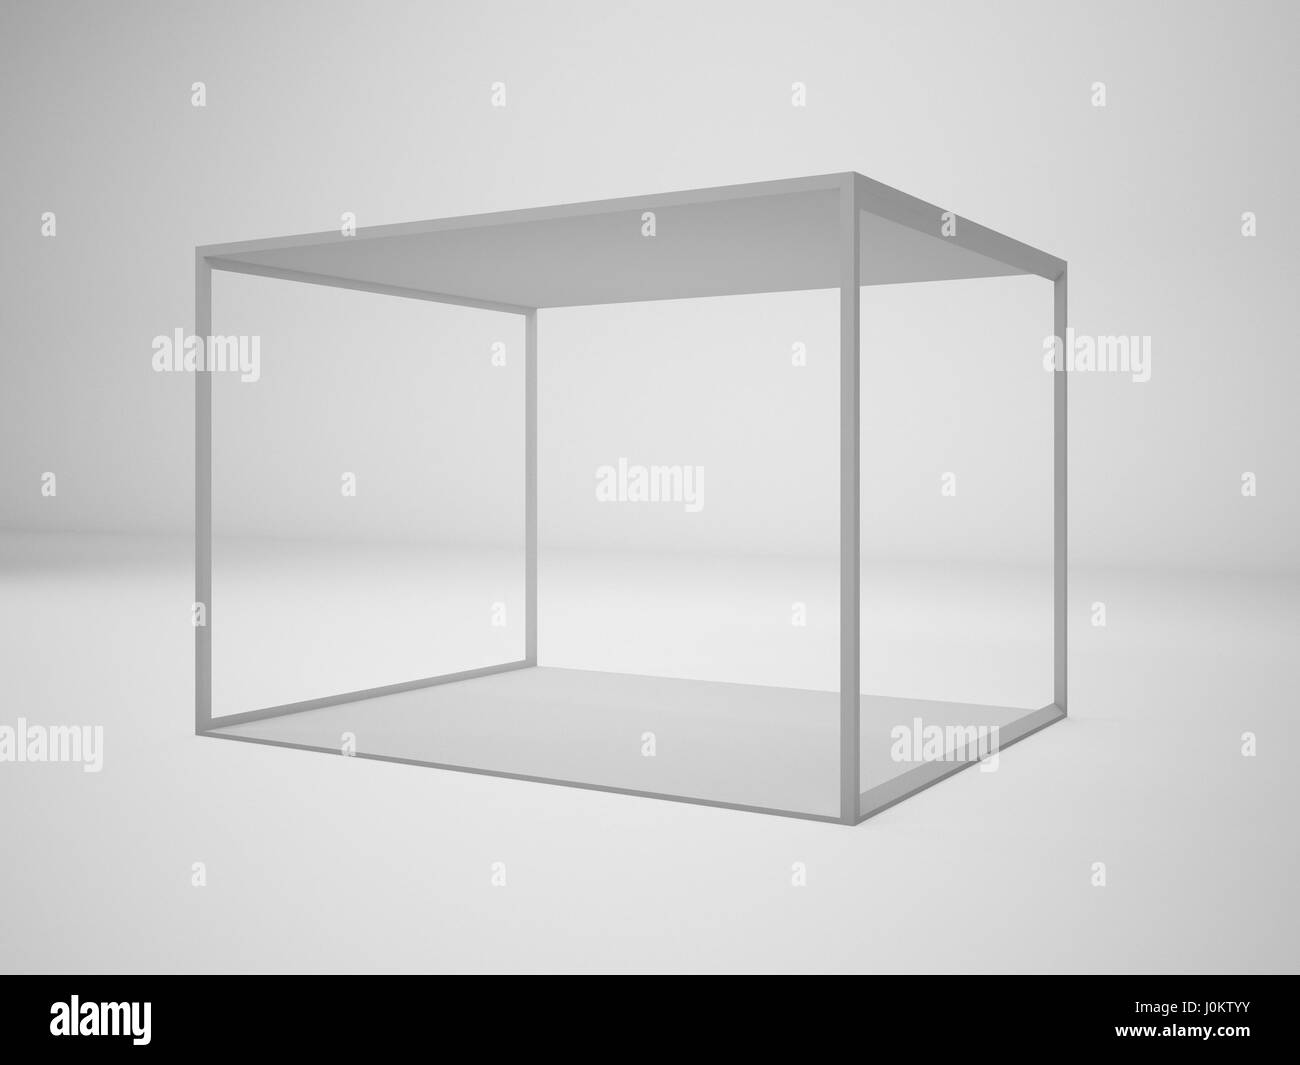 Modern Exhibition Booth : D rendering white modern trade exhibition booth